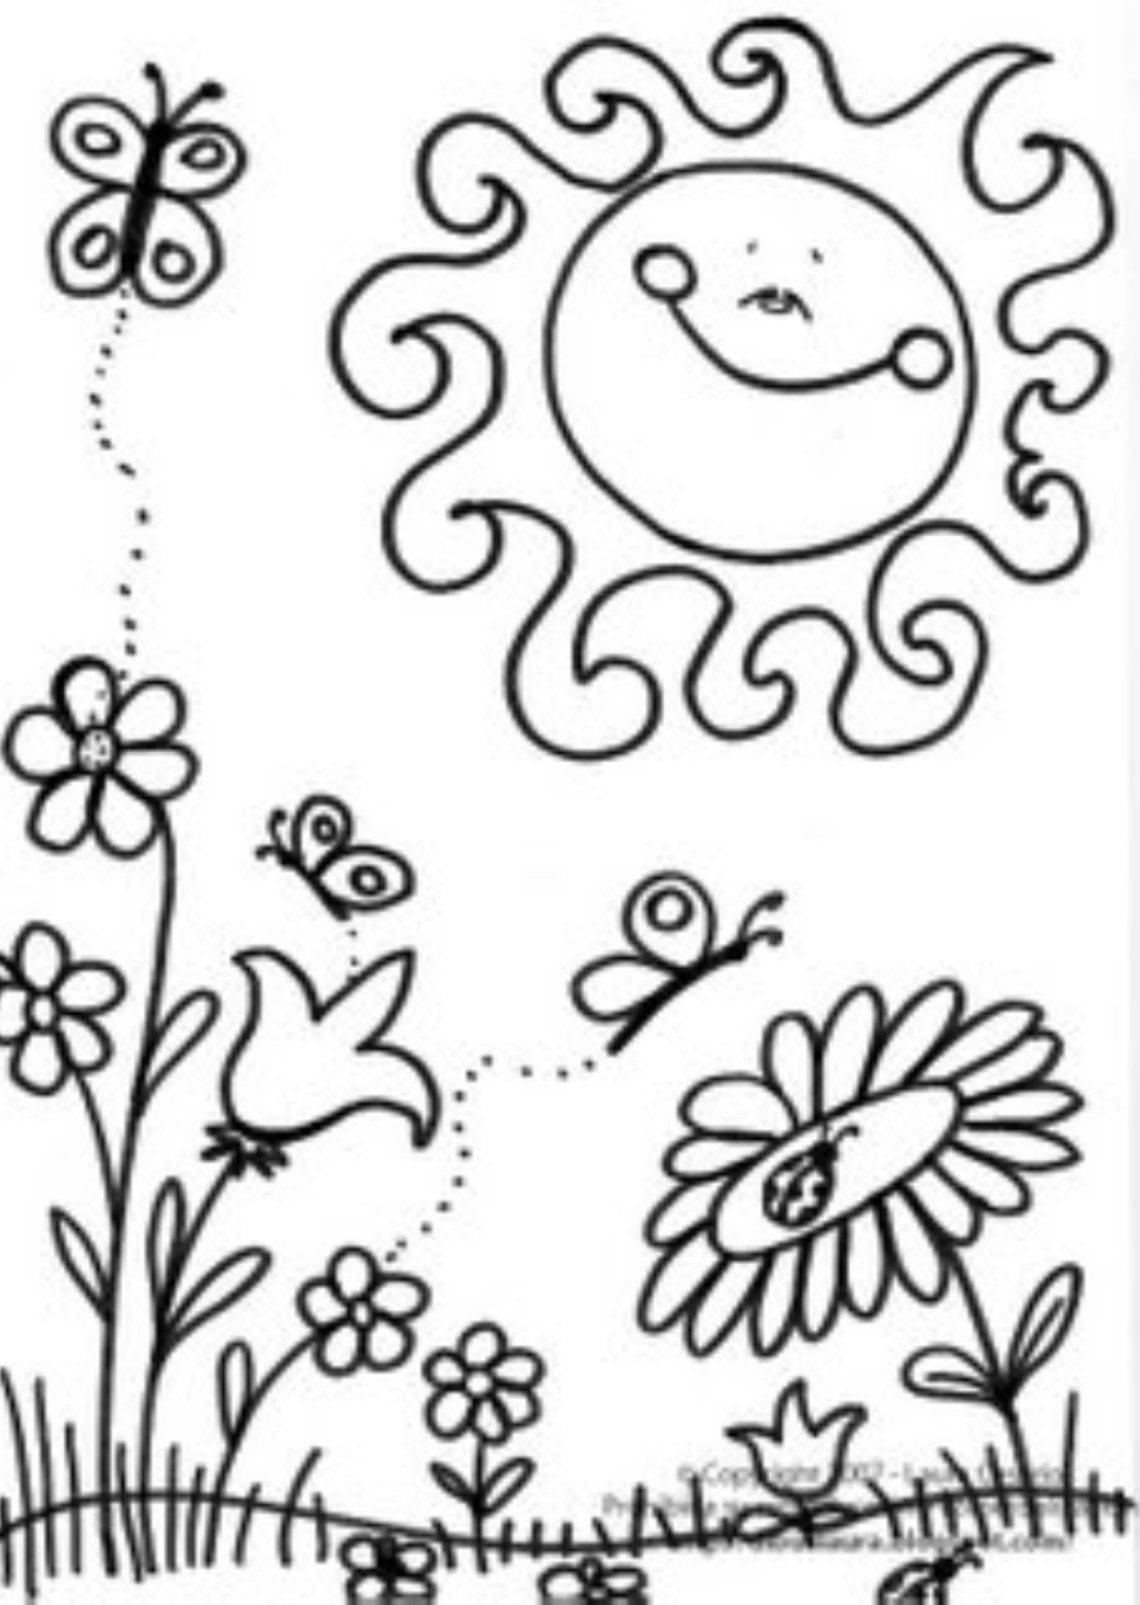 Spring coloring pages to download and print for free | free printable spring coloring pages